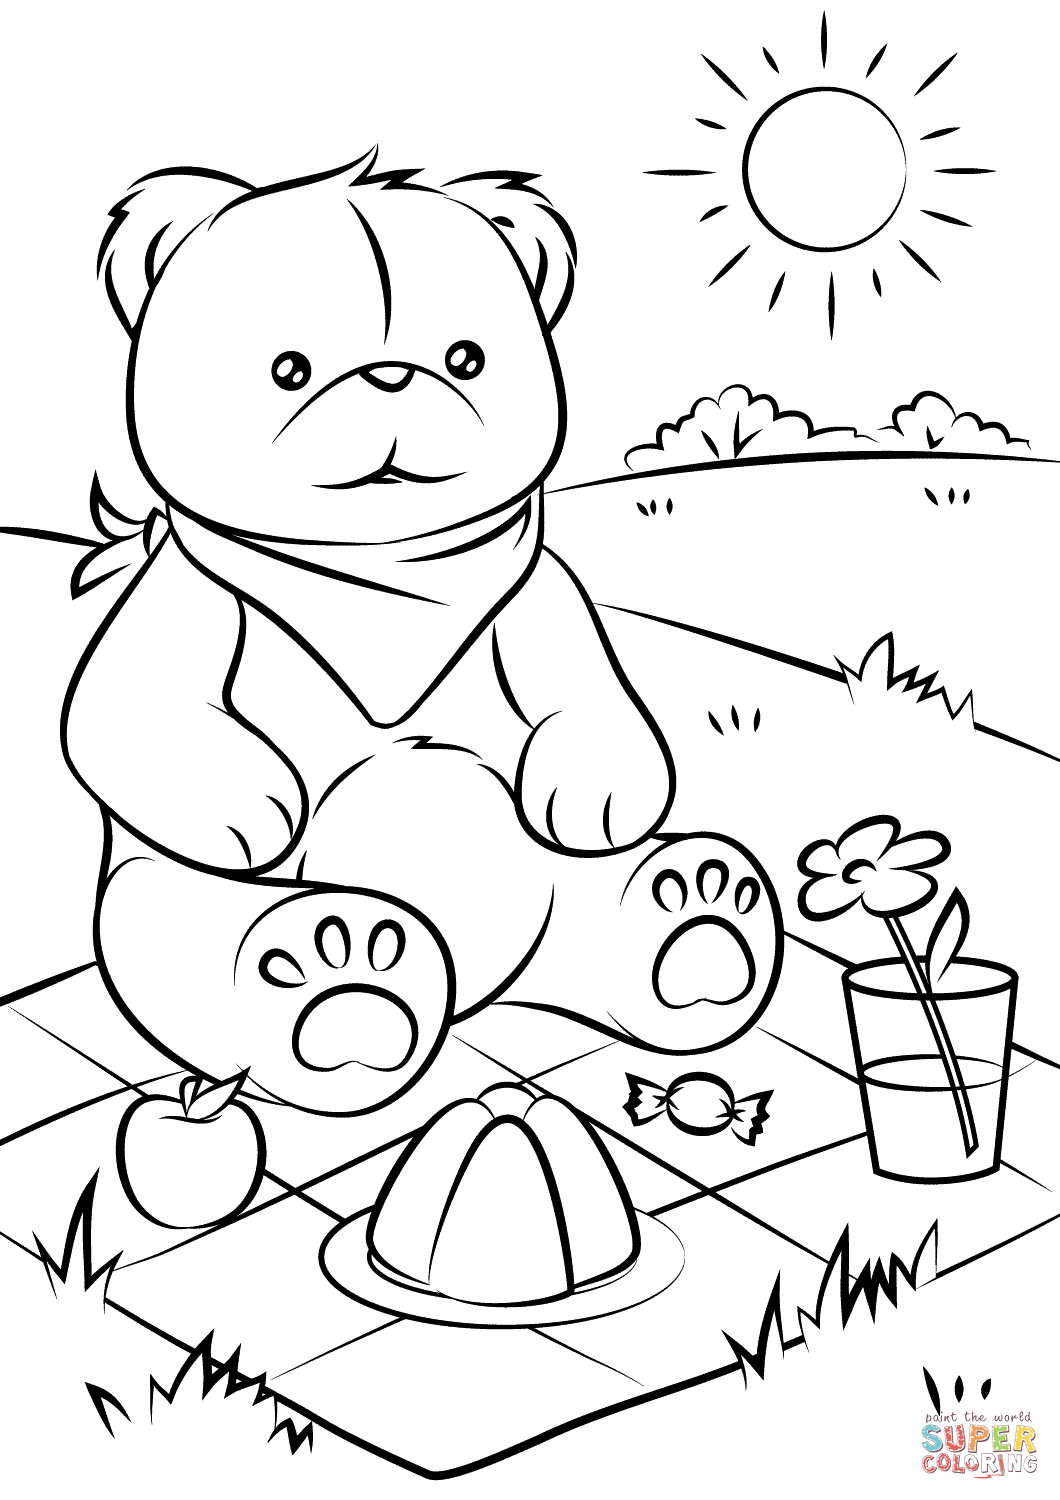 Baby Bear Coloring Pages At Getcolorings